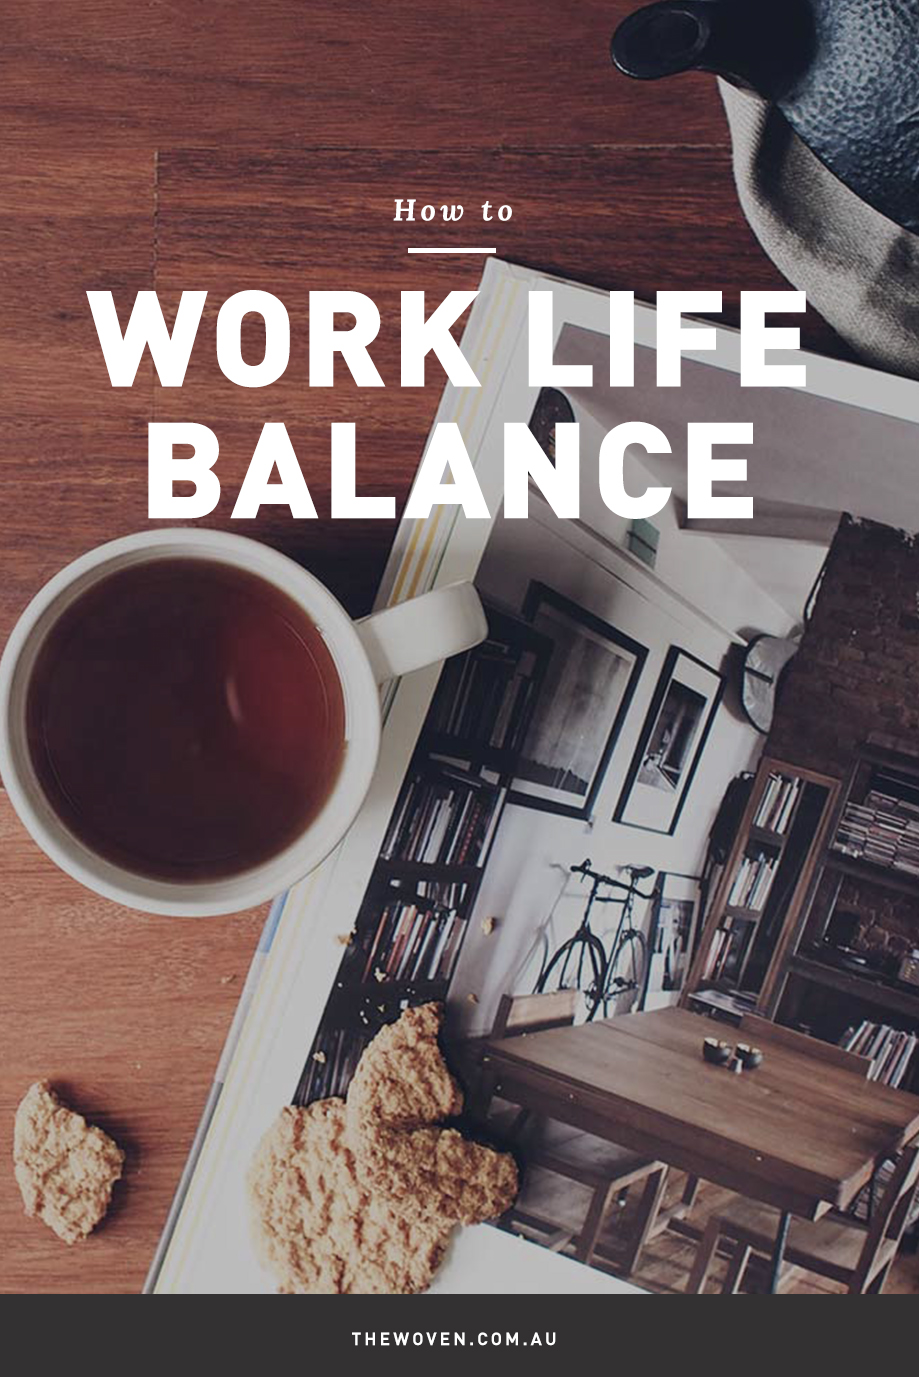 How to Achieve a Work Life Balance